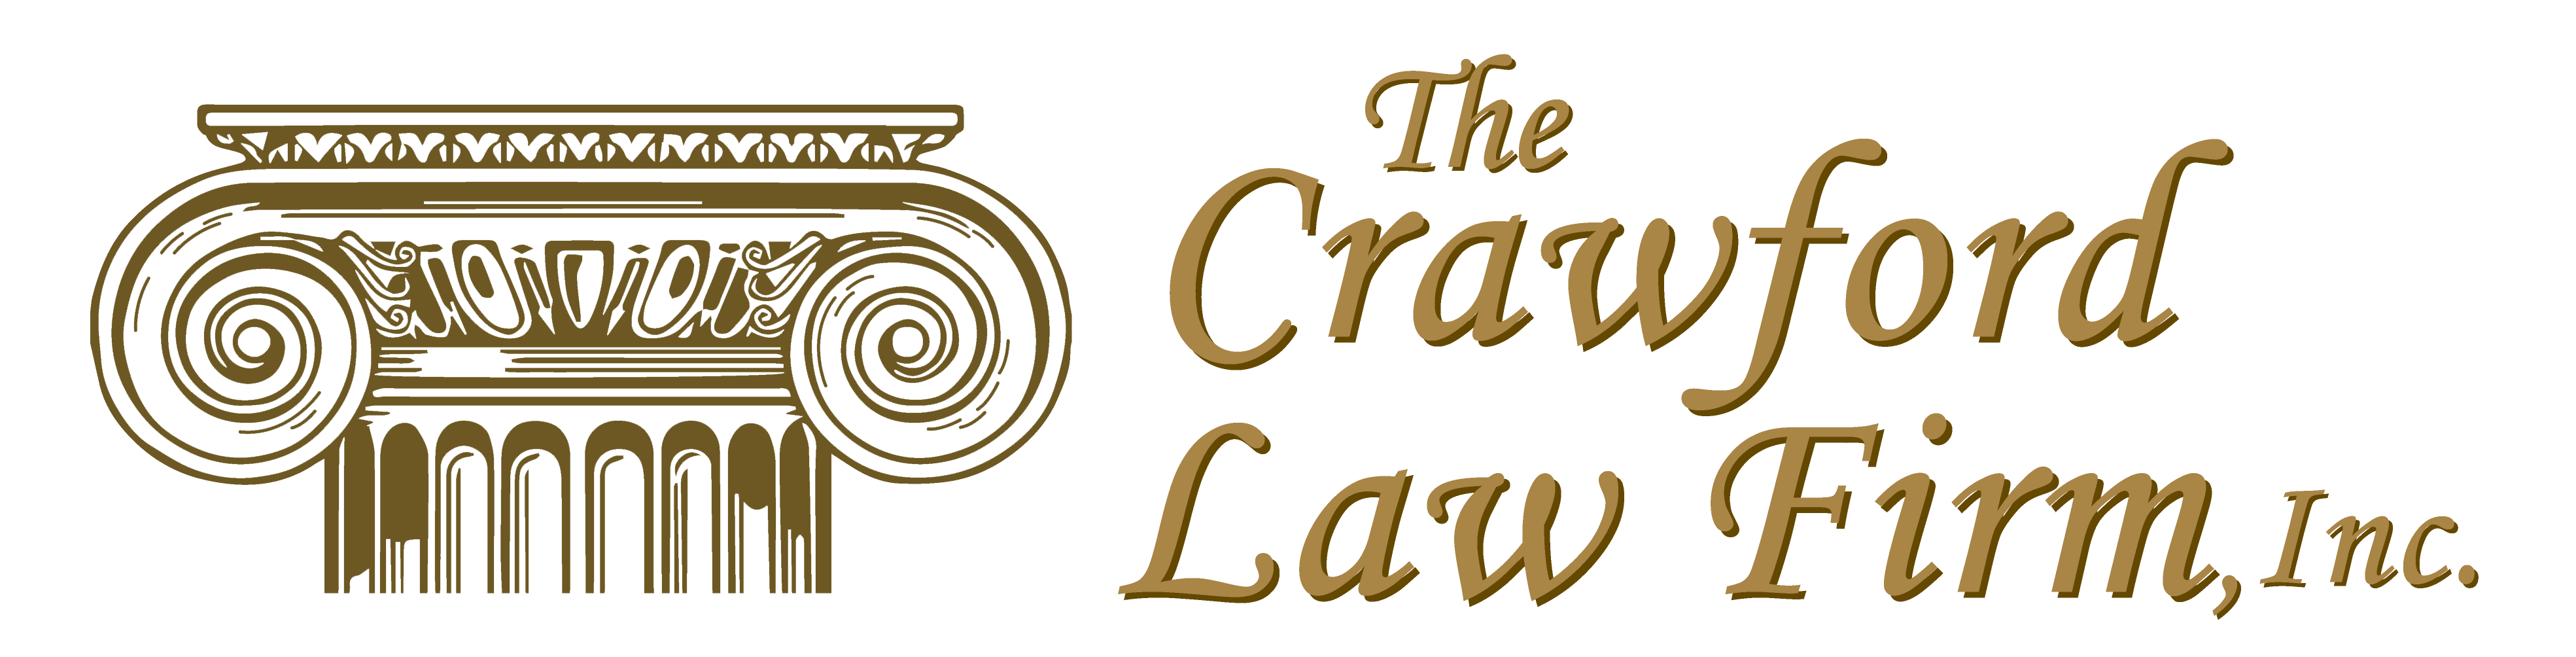 The Crawford Law Firm, Inc.